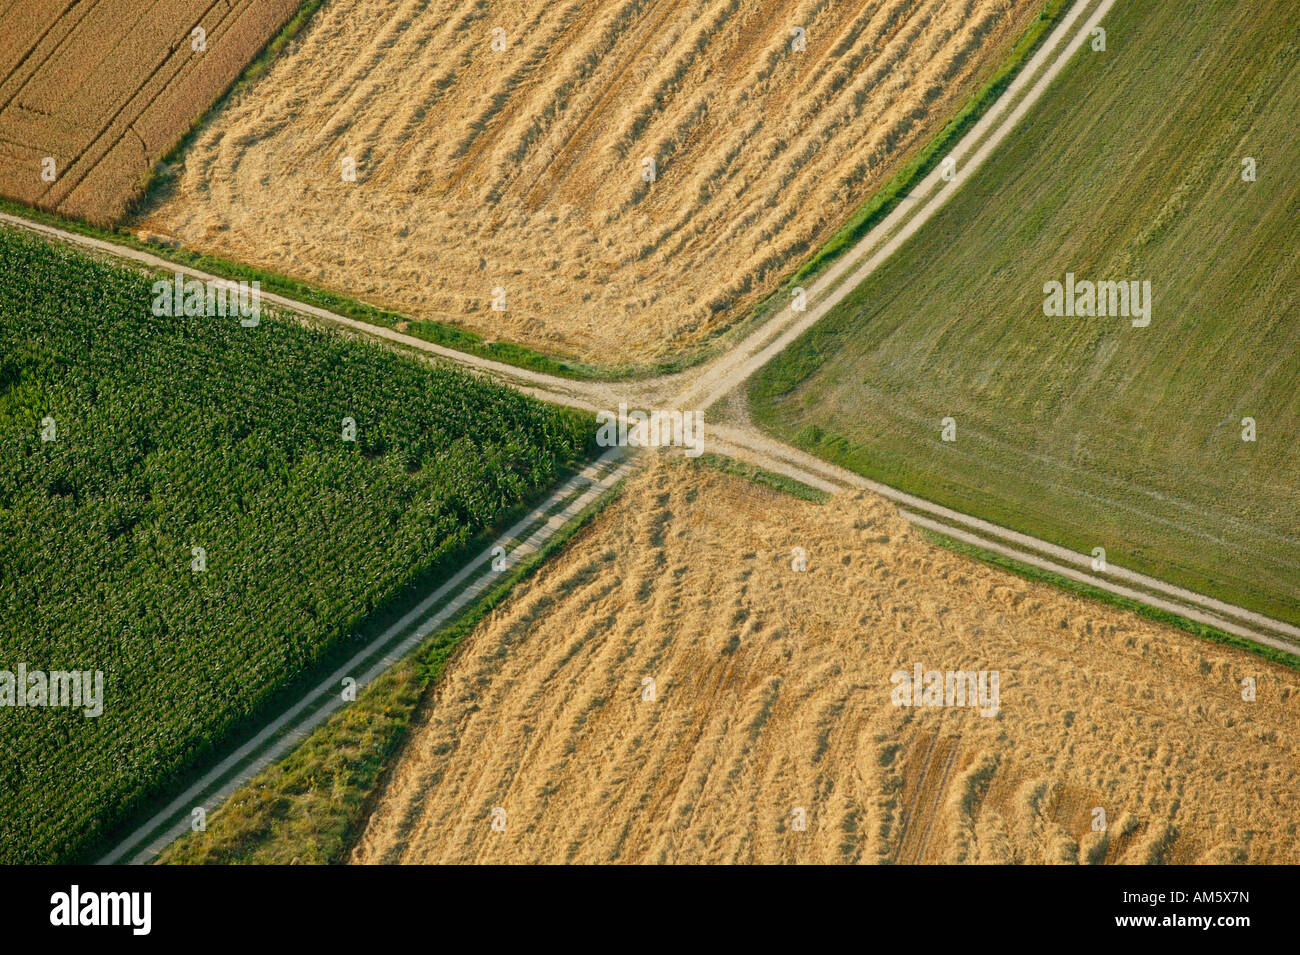 Agricultural paths dividing different fields, Bavaria, Germany Stock Photo